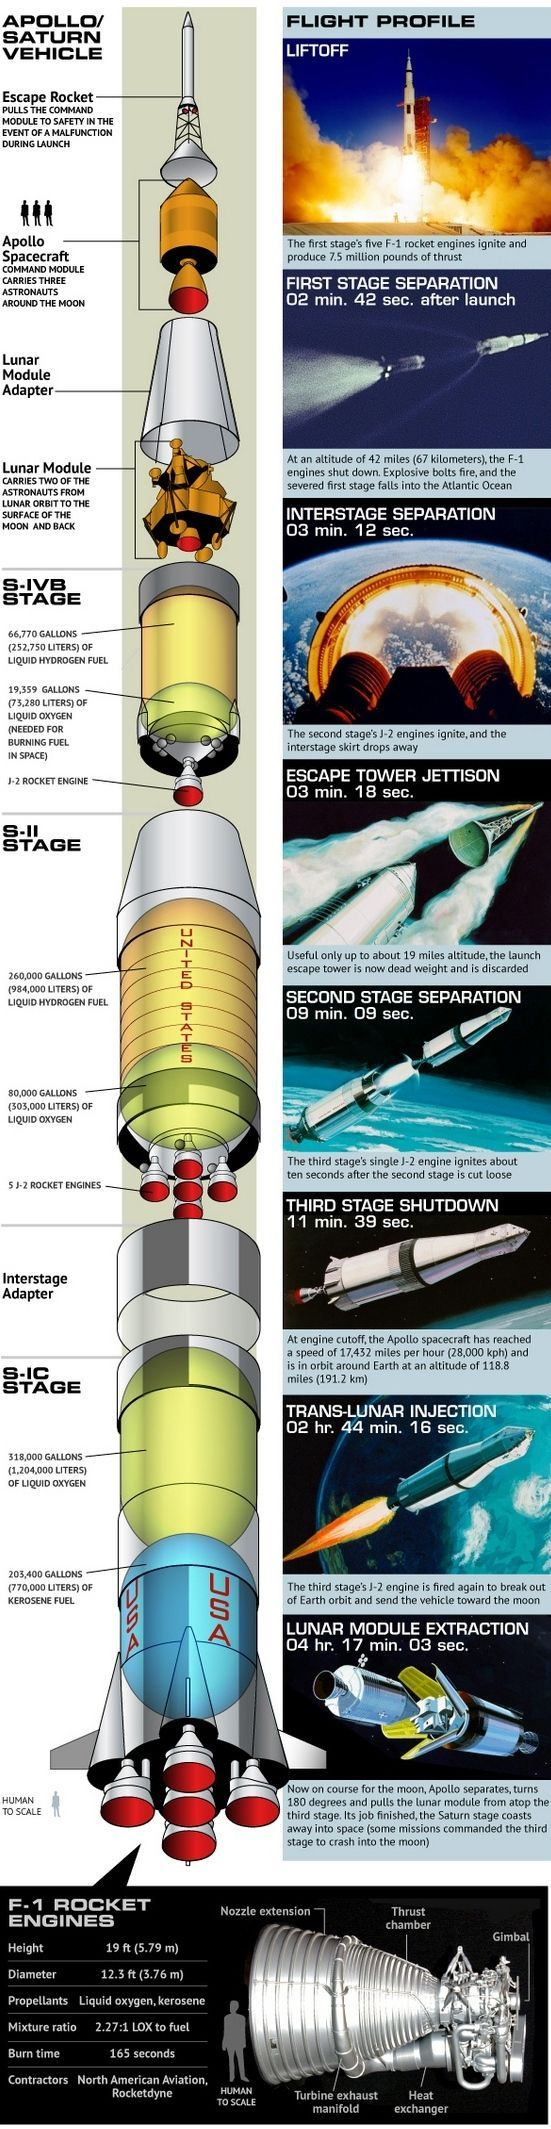 Apollo Saturn Launch Vehicle